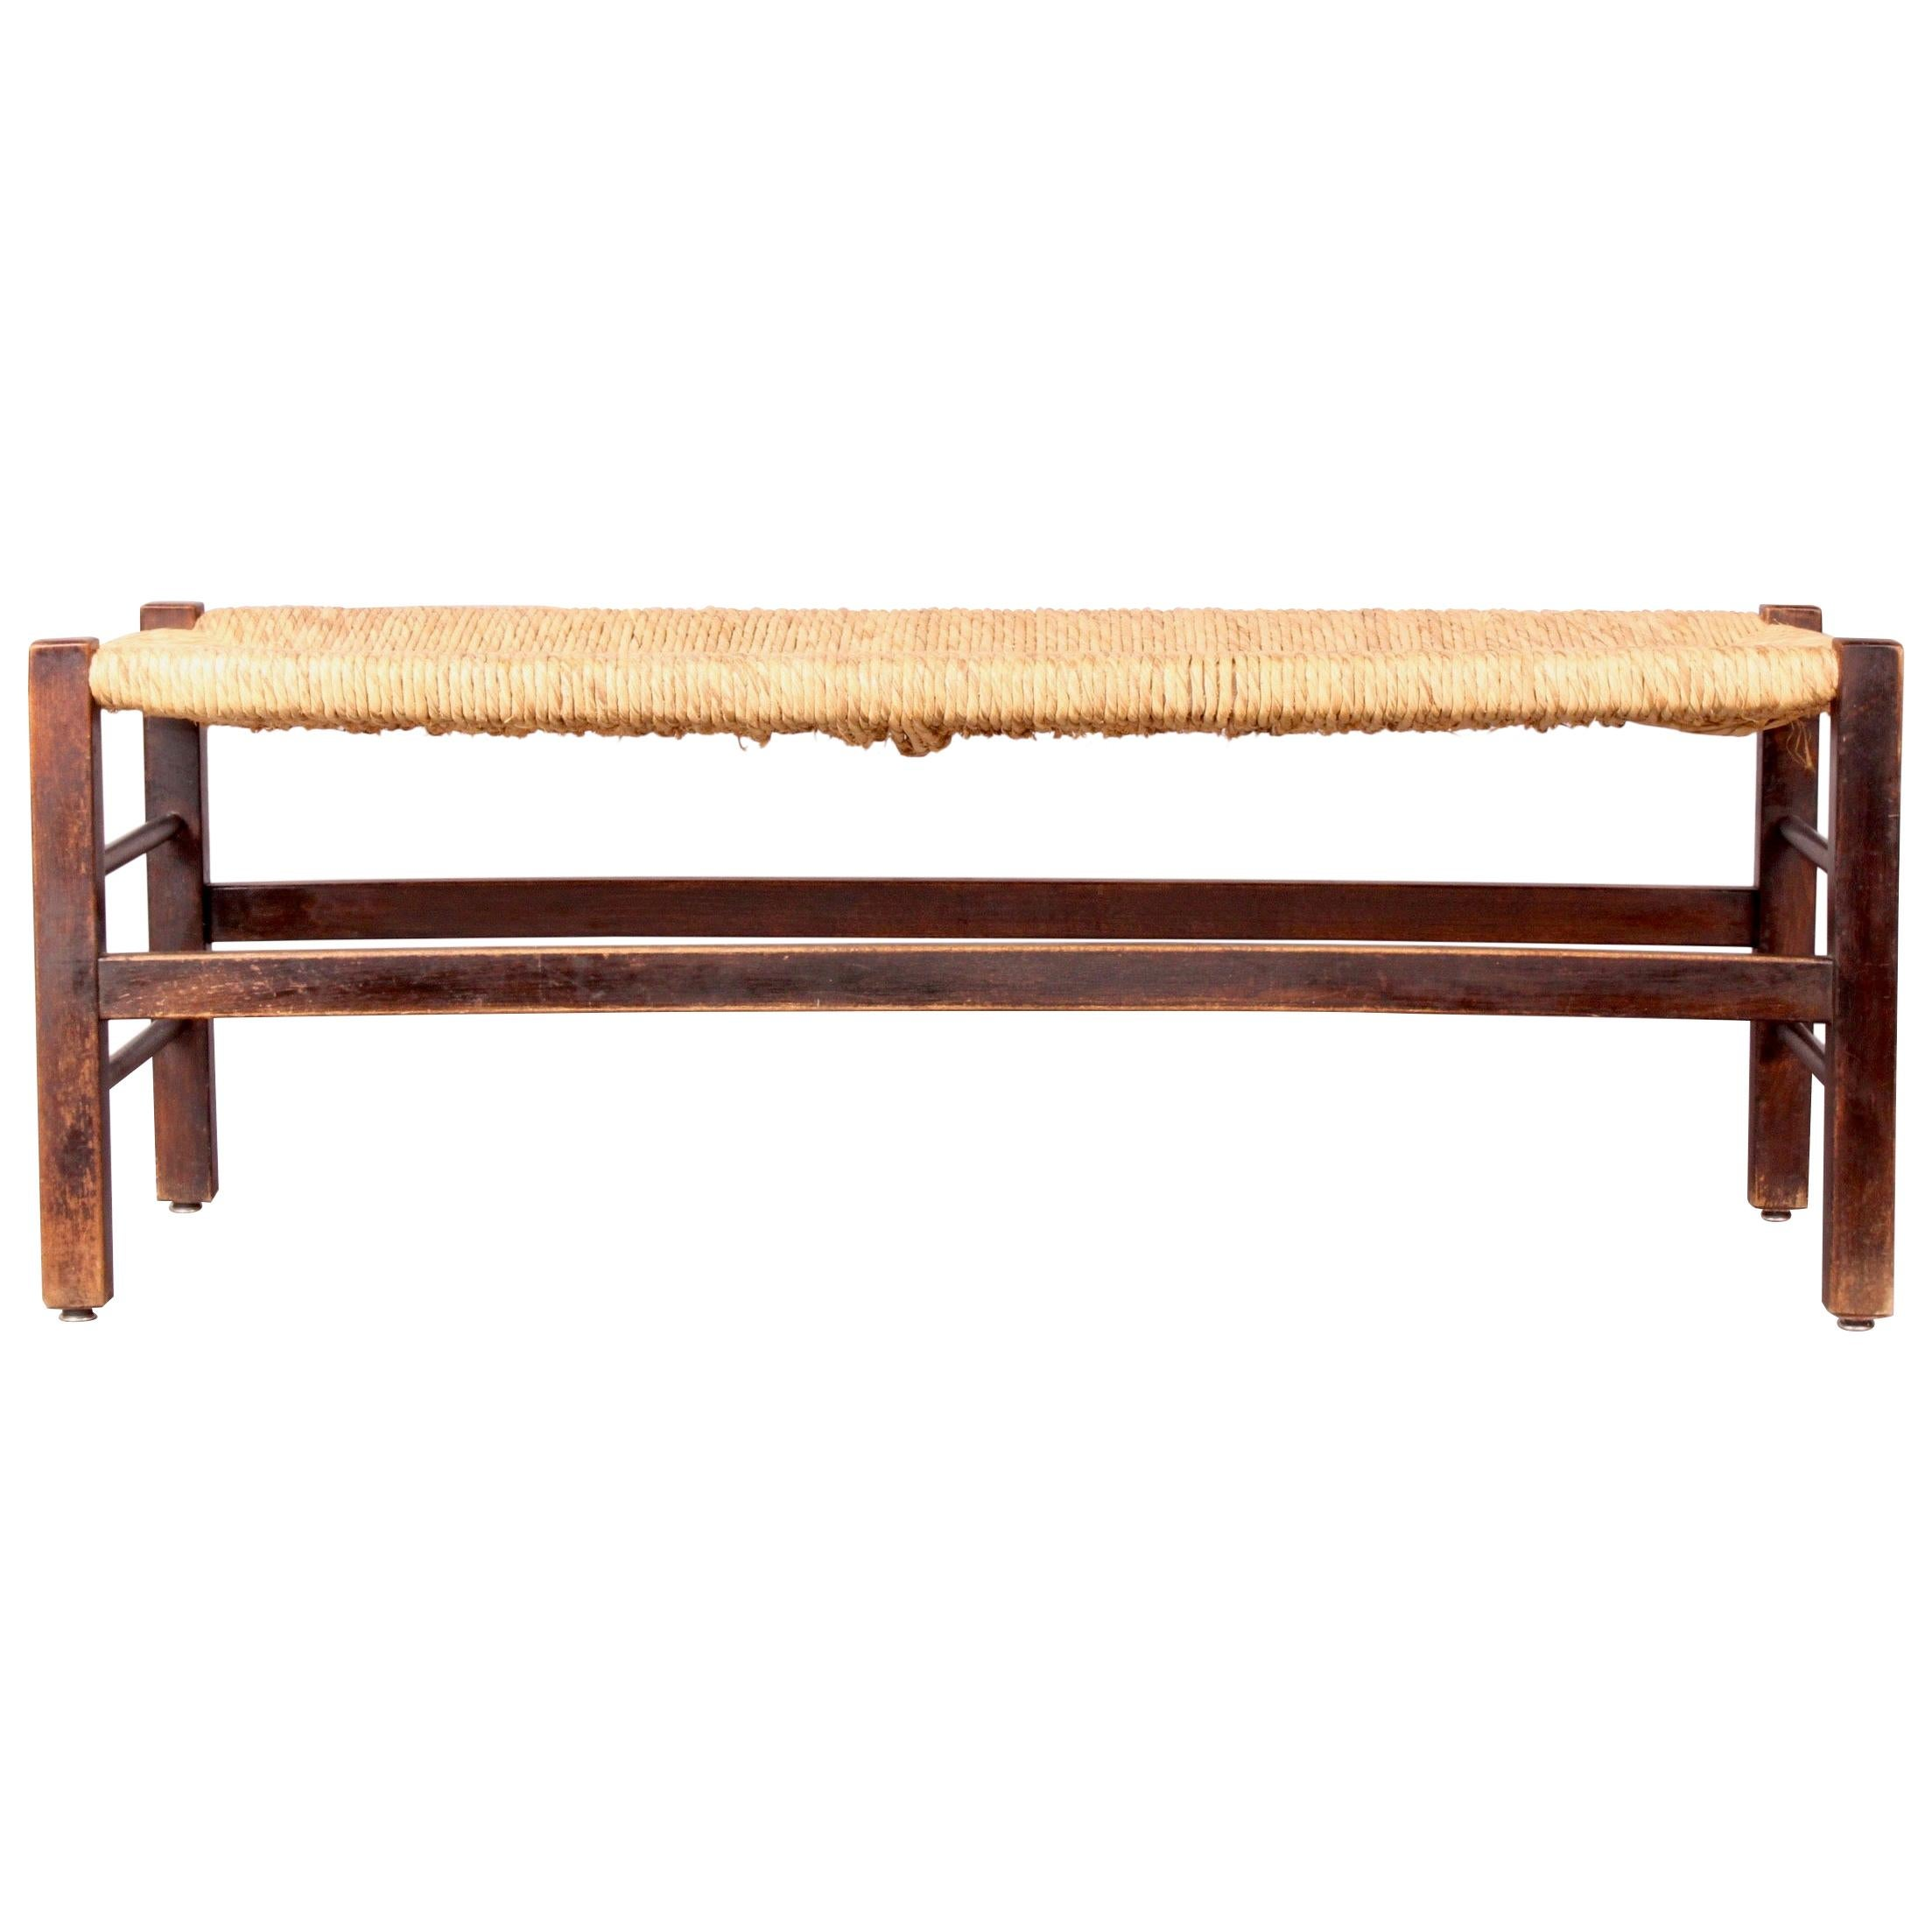 Straw and Wood Bench